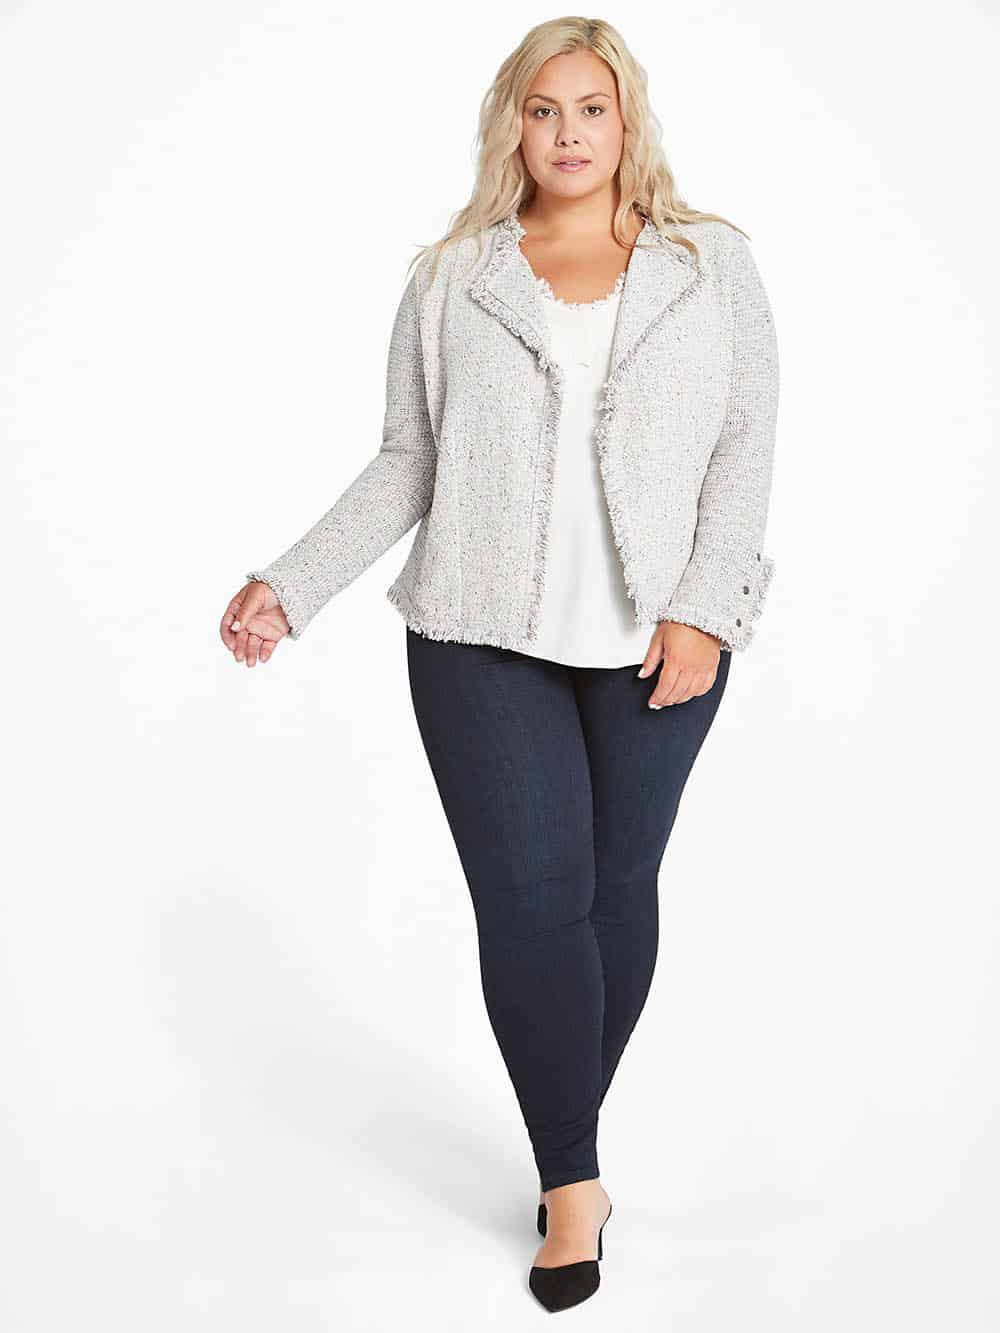 Nic and Zoe, one of Next Level Wardrobe's recommended minimalist brands for plus size women